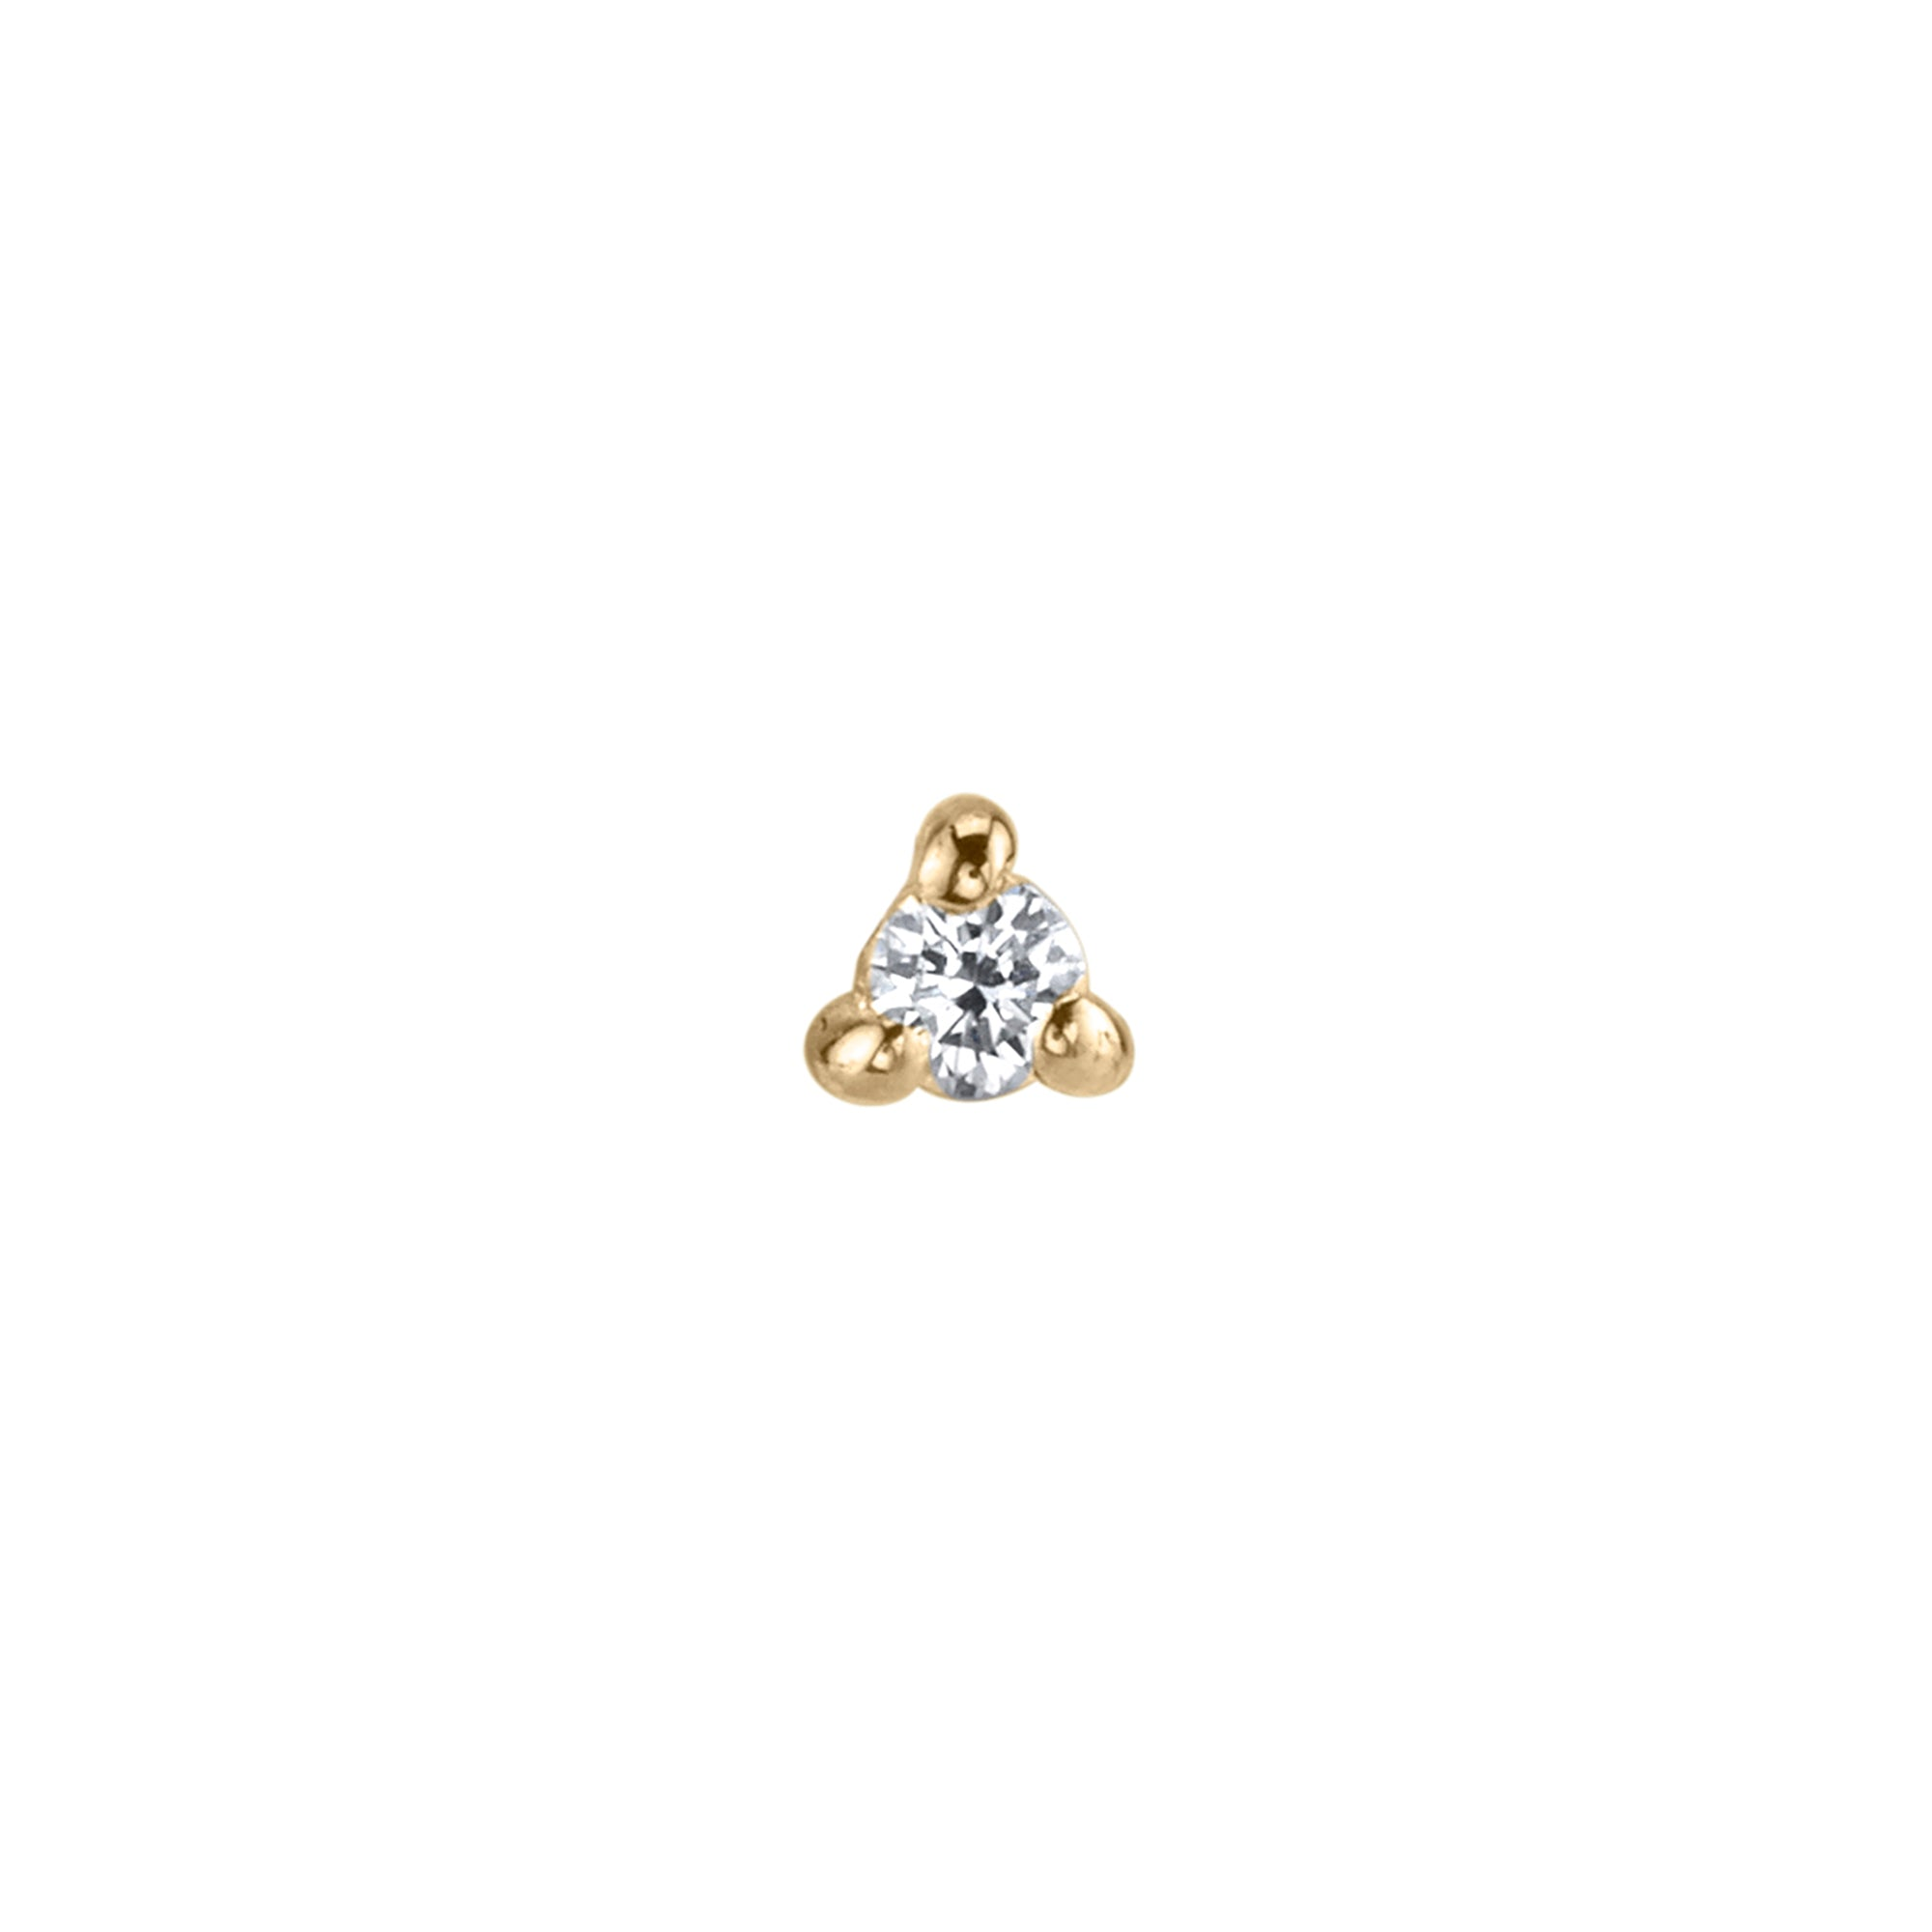 Diamond Mini Stud by Lizzie Mandler for Broken English Jewelry